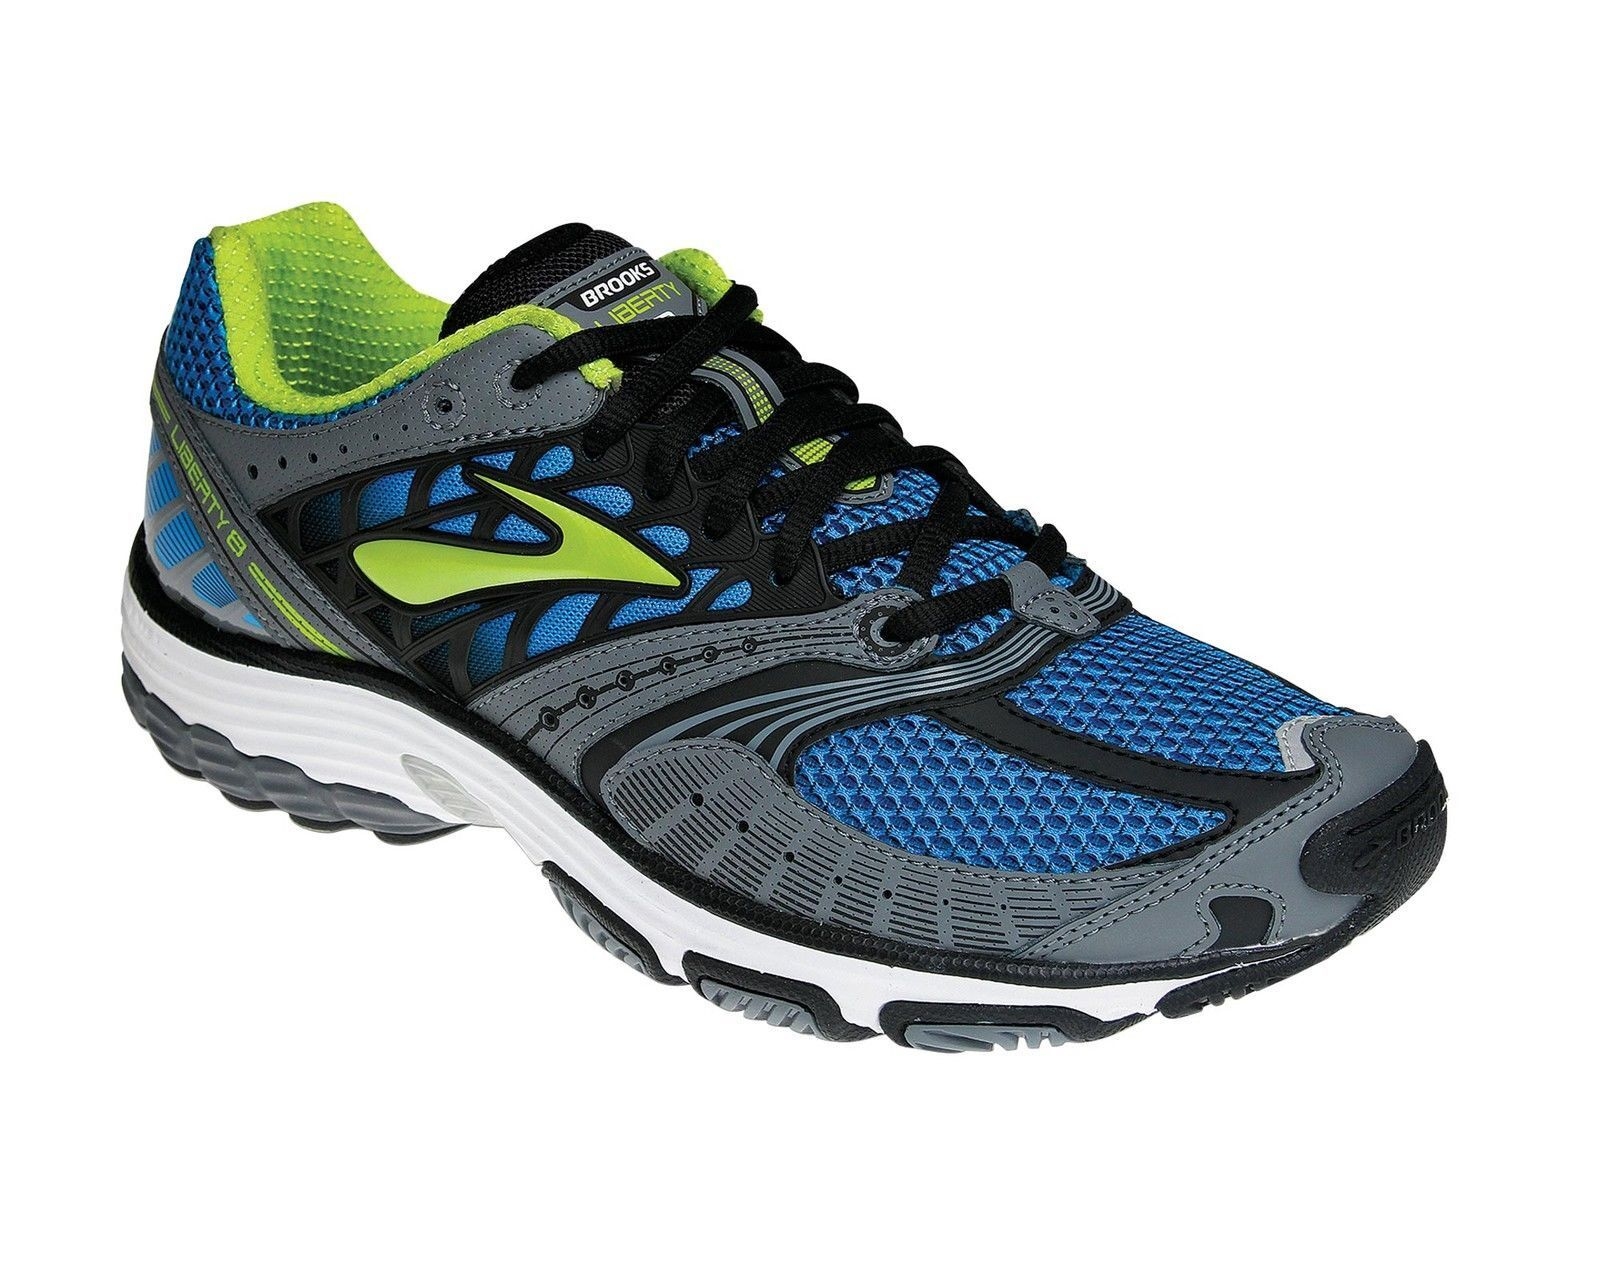 *Sale* Brooks Liberty 8 Mens Running Shoes (033) Was 180 NOW 139.90 SAVE 40